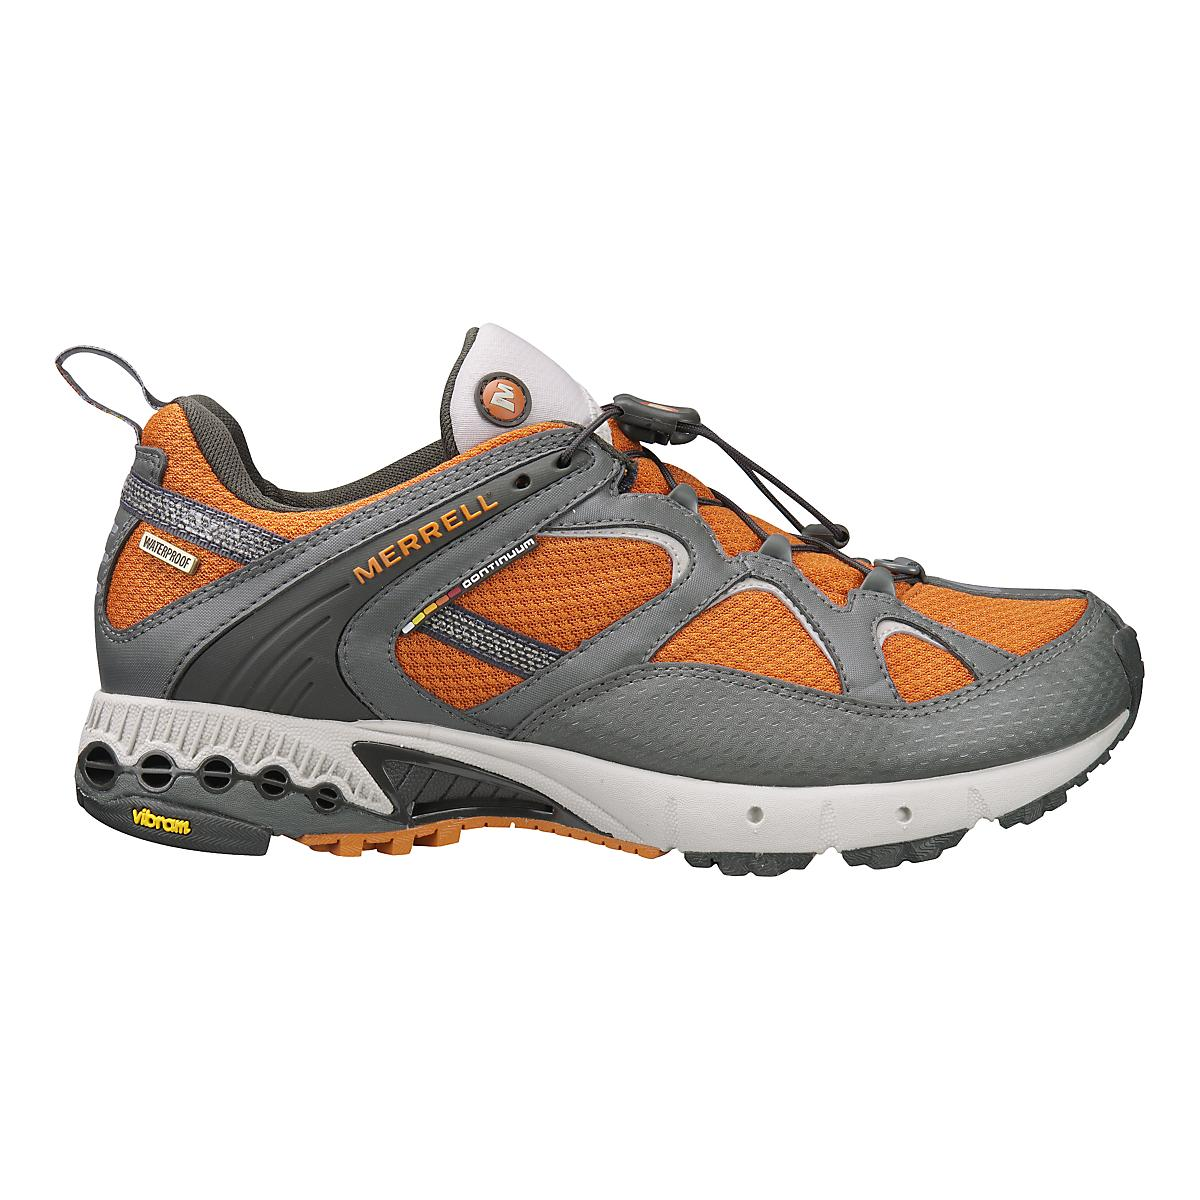 Mens Merrell Overdrive Waterproof Trail Running Shoe at Road